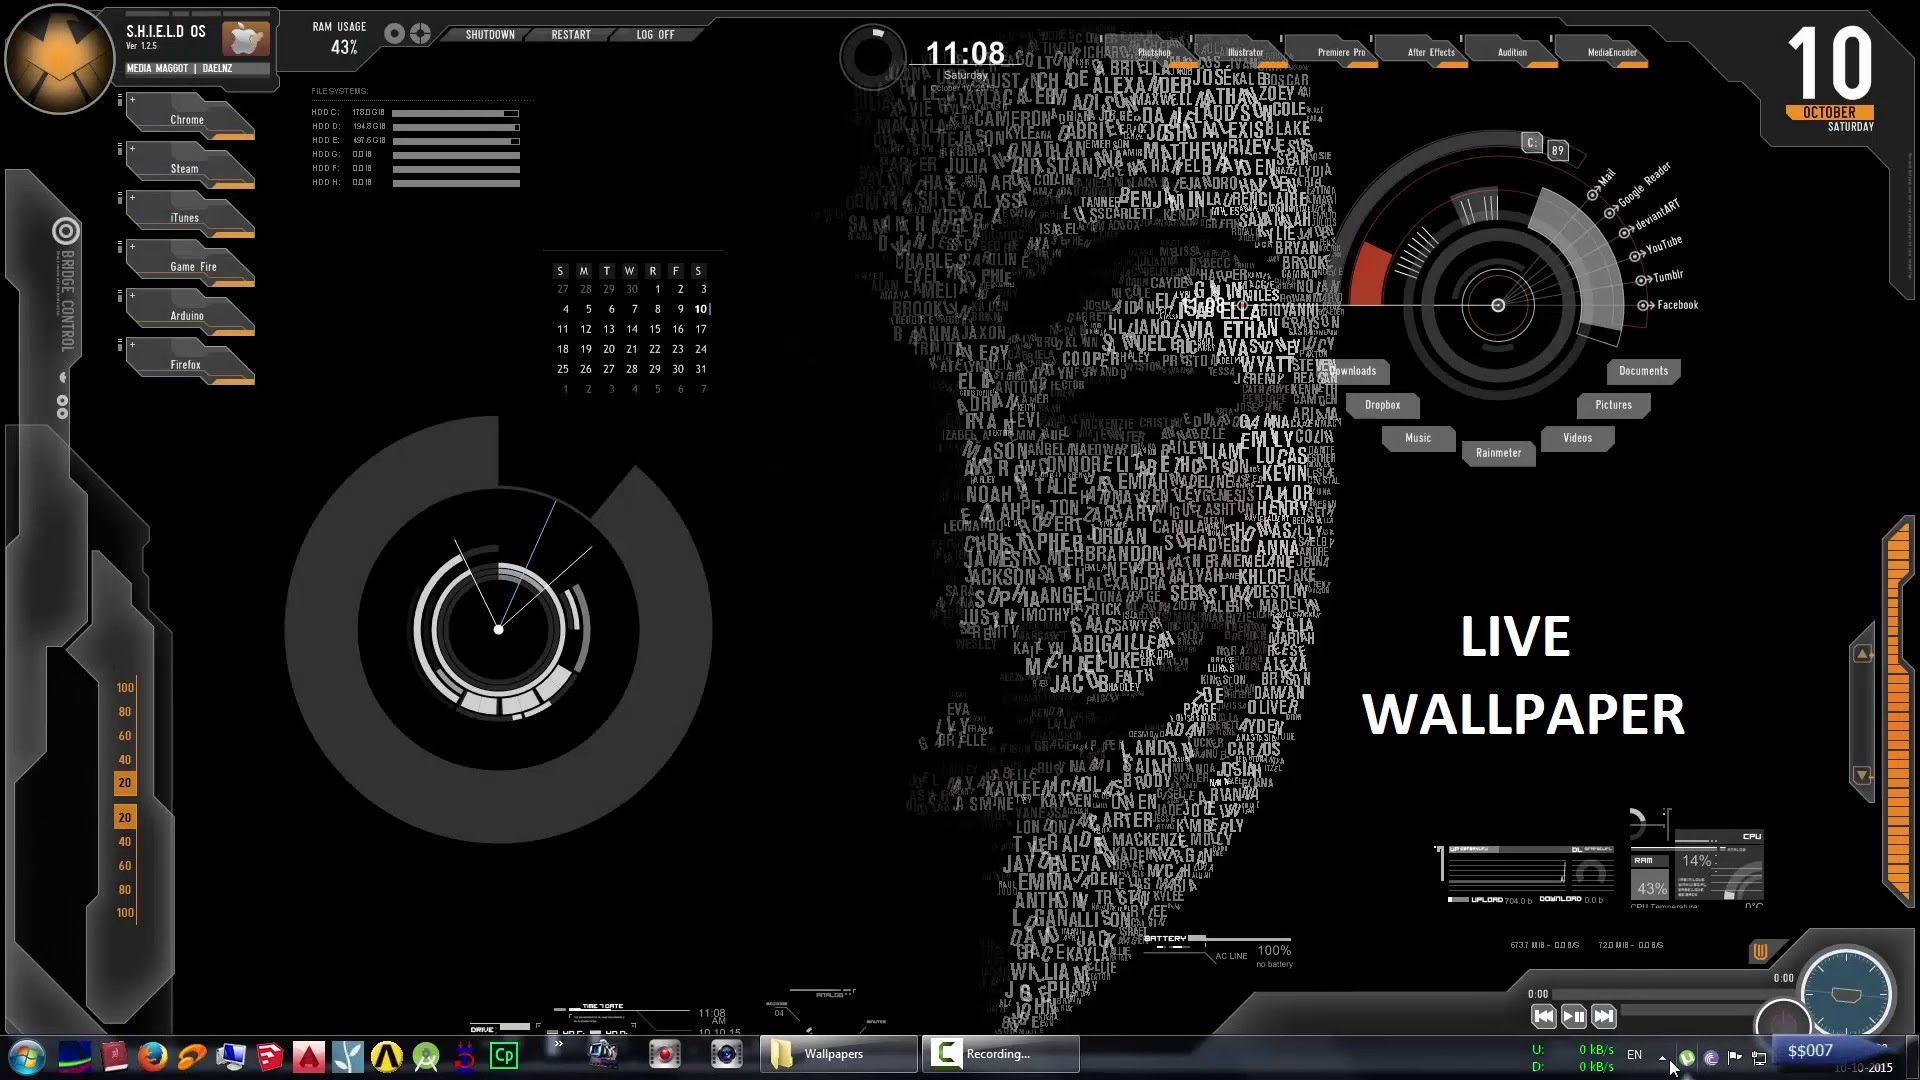 I am Hacked - Live Wallpaper - Android Apps on Google Play